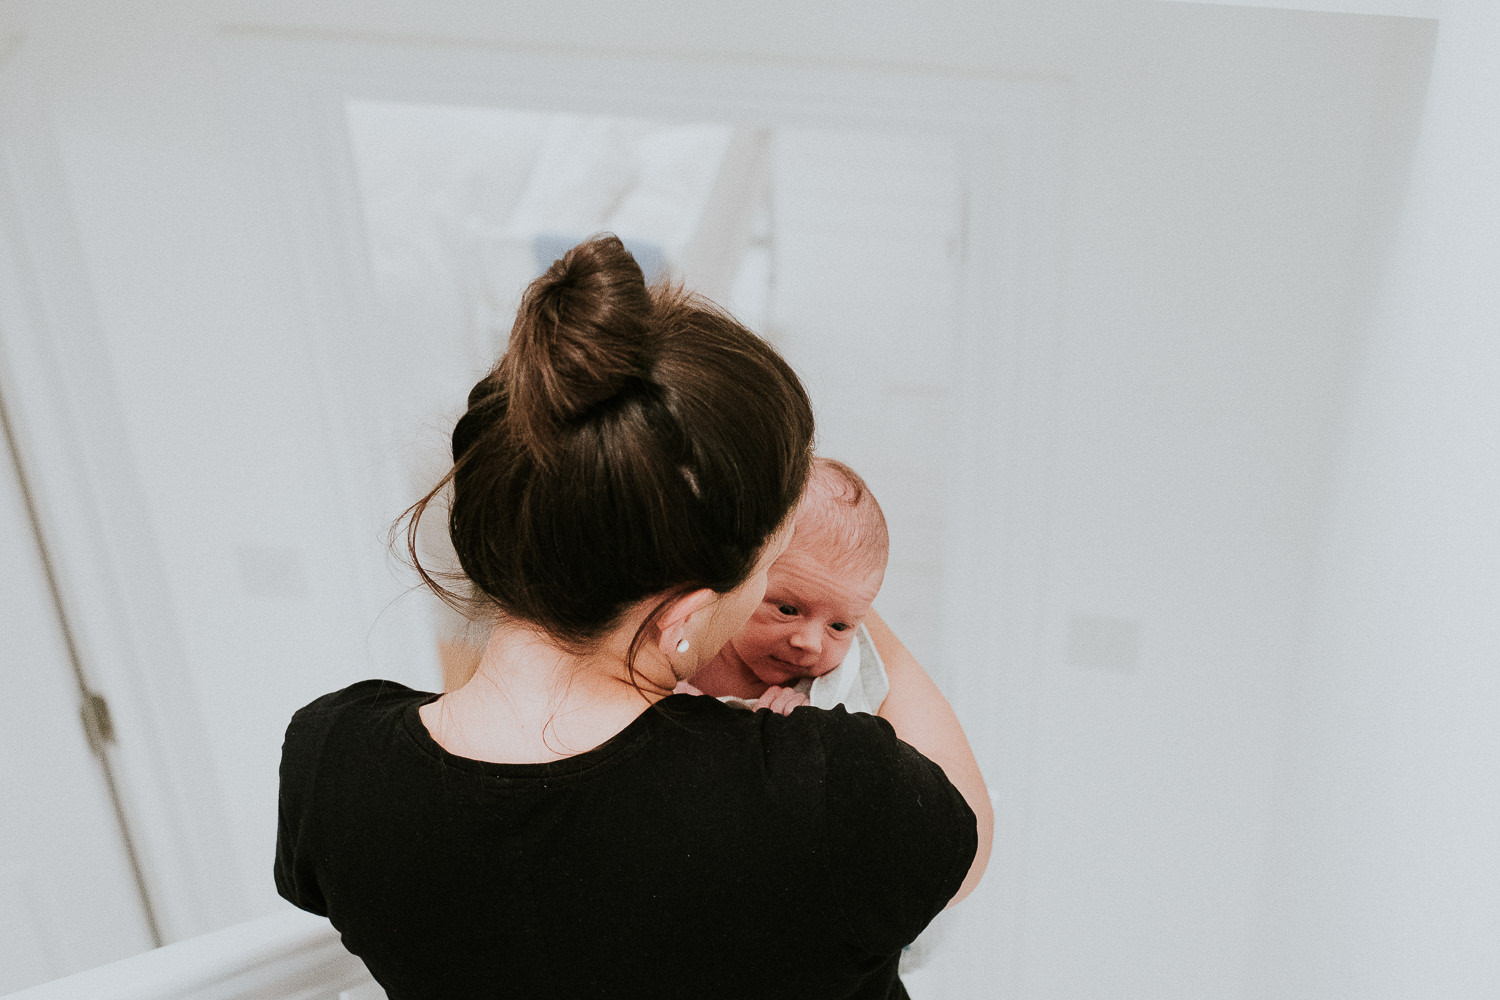 newborn baby boy being carried downstairs in mothers arms